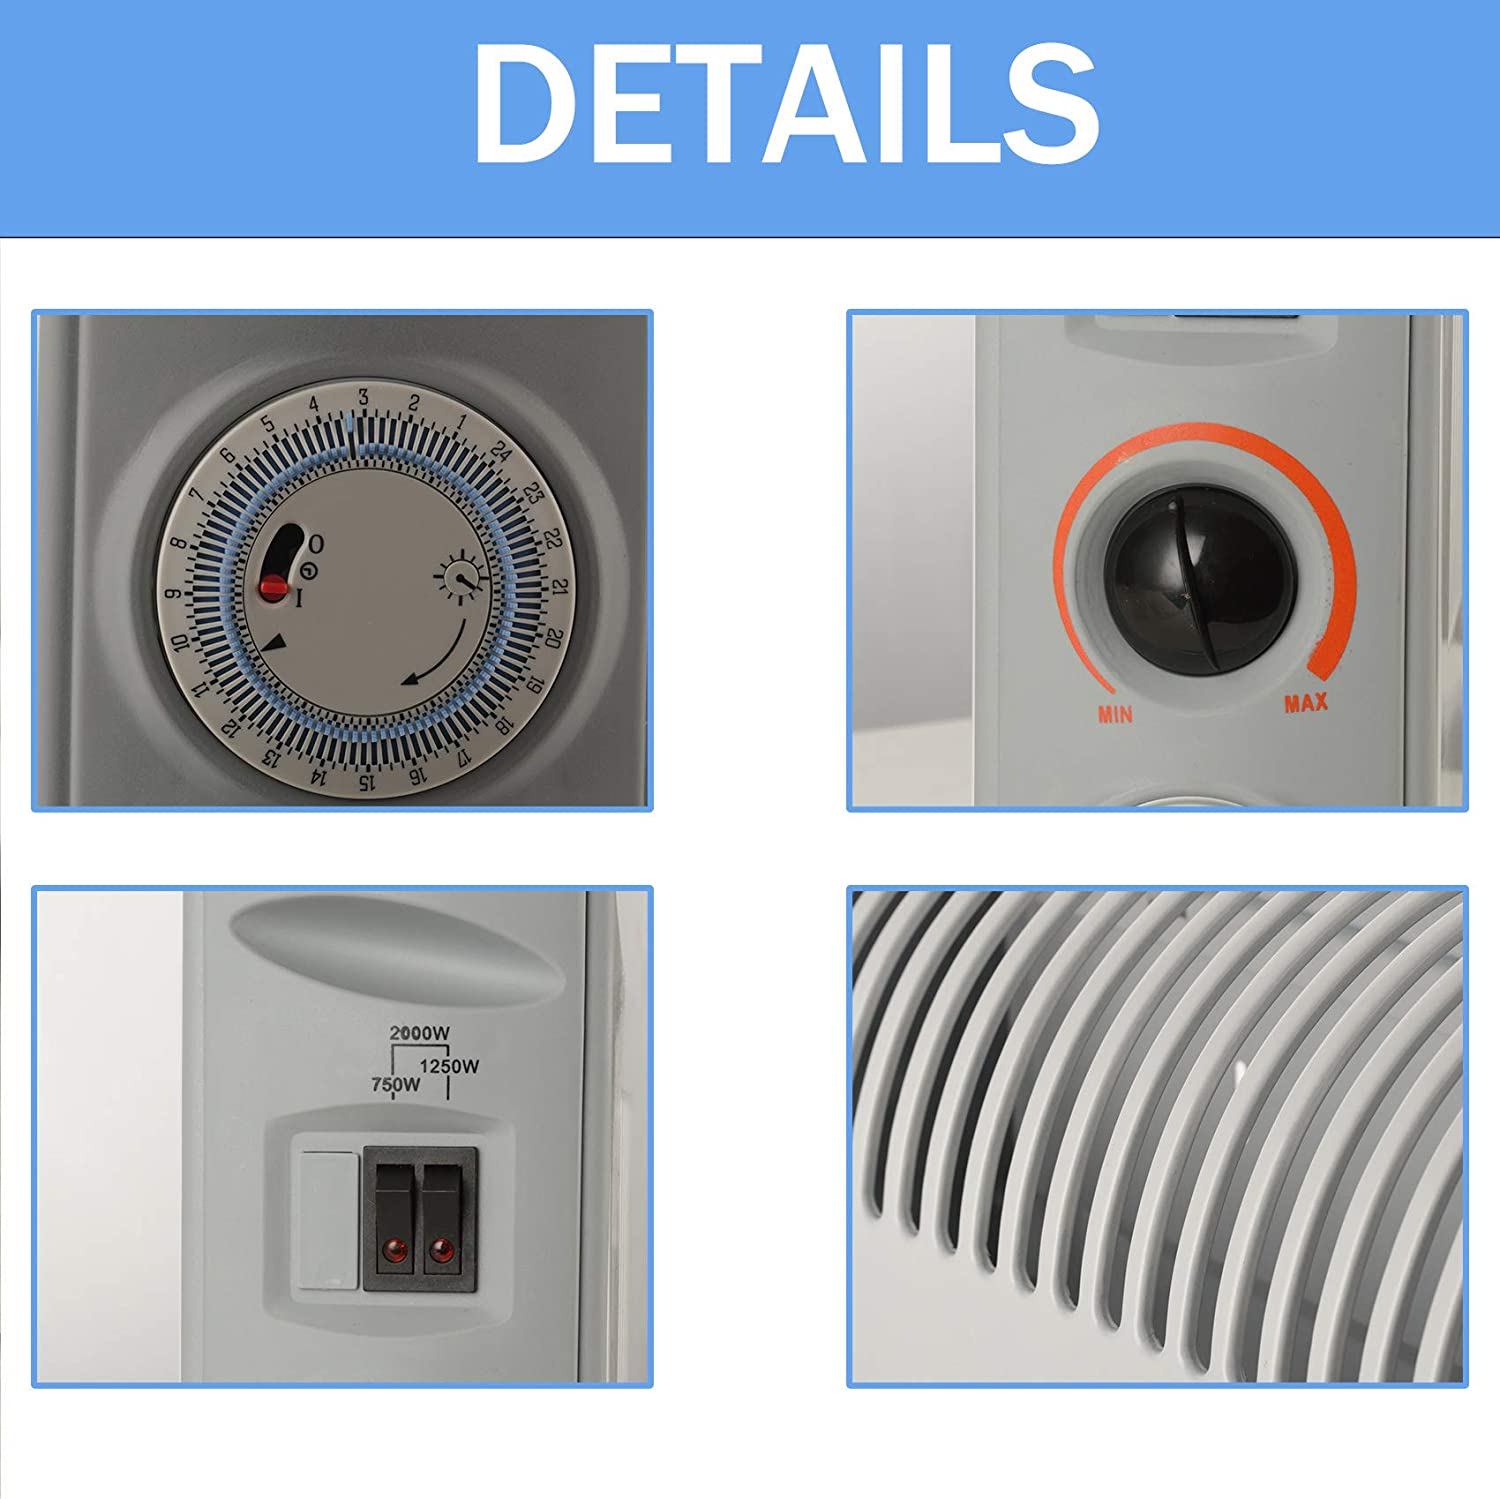 Wall Mounted Safety Electric Heater DONYER POWER Portable Convective Indoor Space Heater Low Noise 750W // 1250W // 2000W Thermostat White